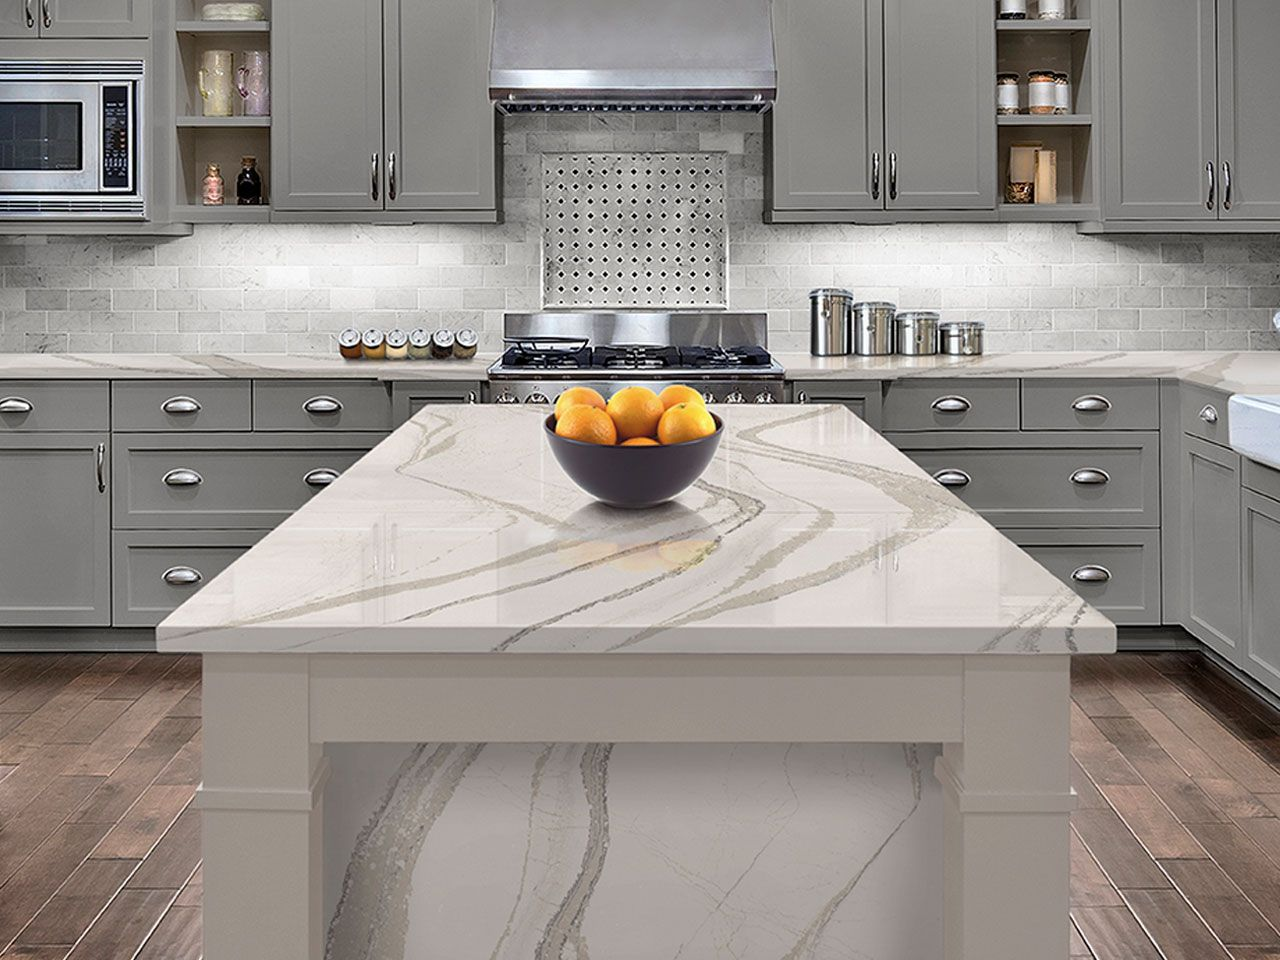 Britannicau0027s Wave Like Pattern Relaxes This Kitchen With Its Warm Gray  Tones.